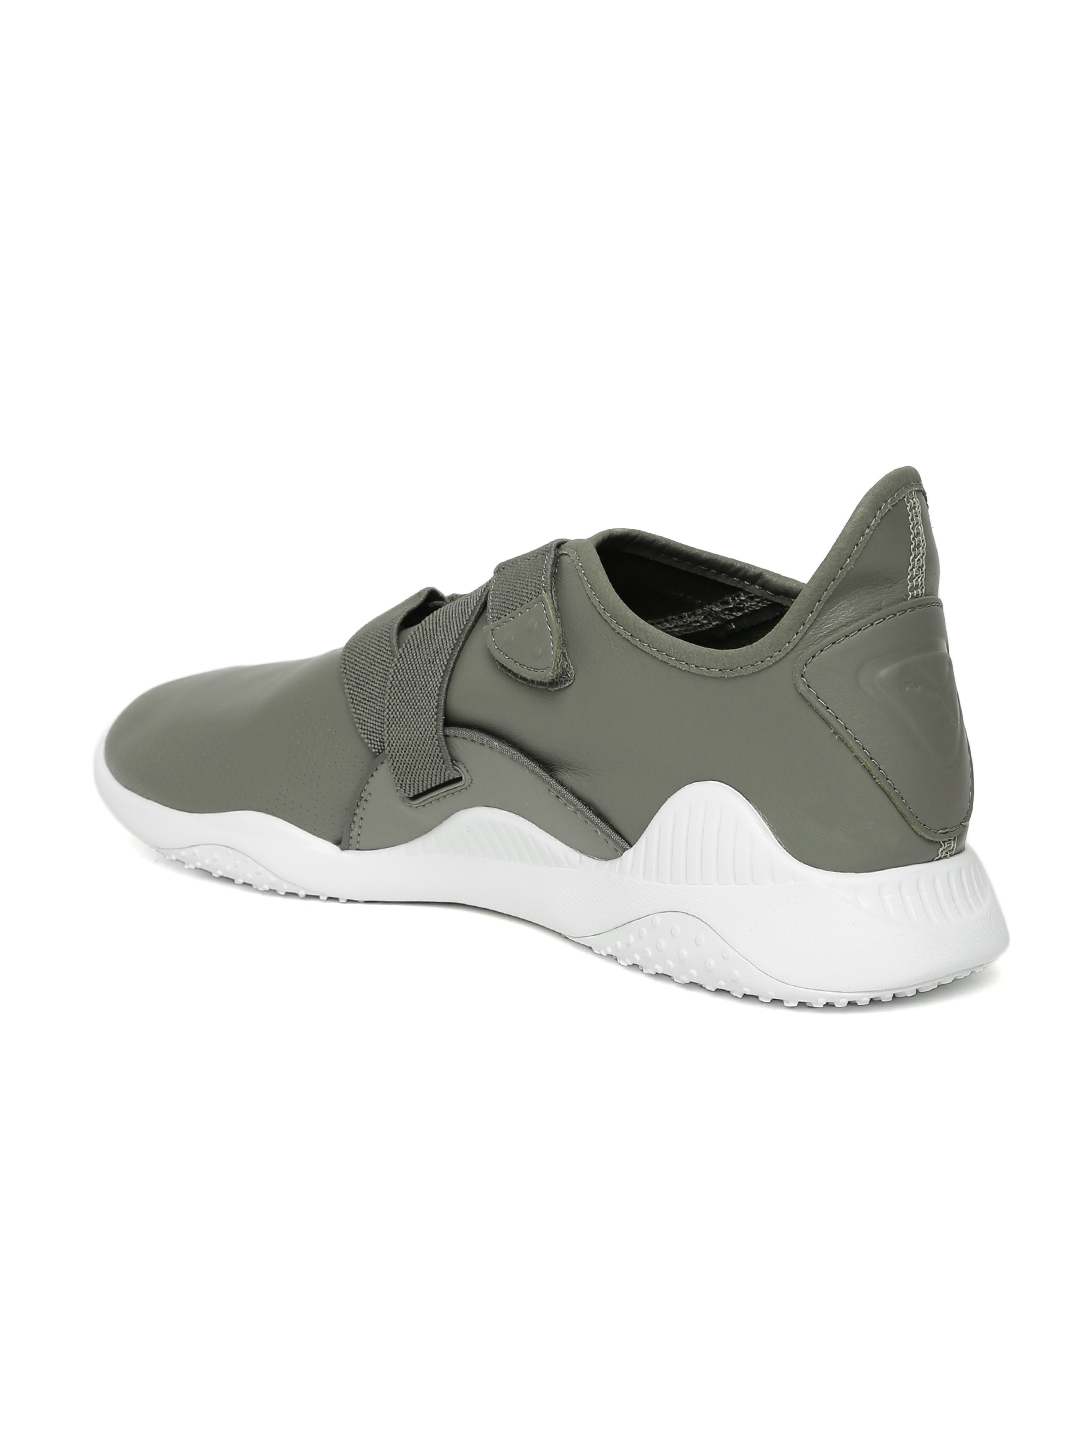 Buy Puma Men Grey Mostro Eng. Leather Sneakers - Casual Shoes for ... a73957065